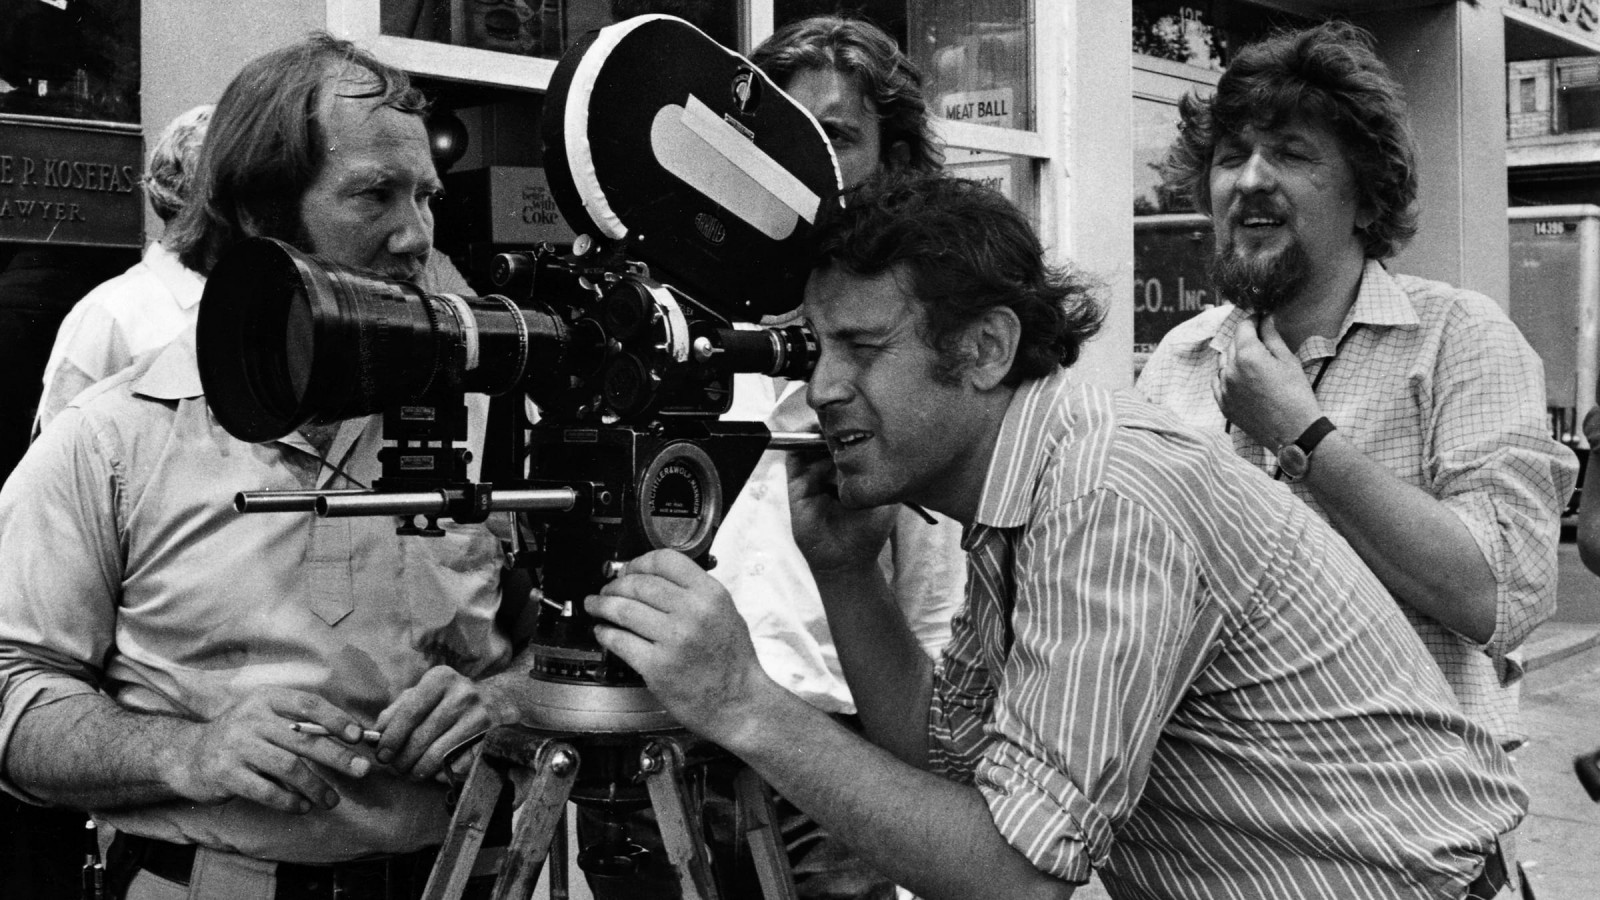 Miloš Forman, the Openhearted Nonconformist